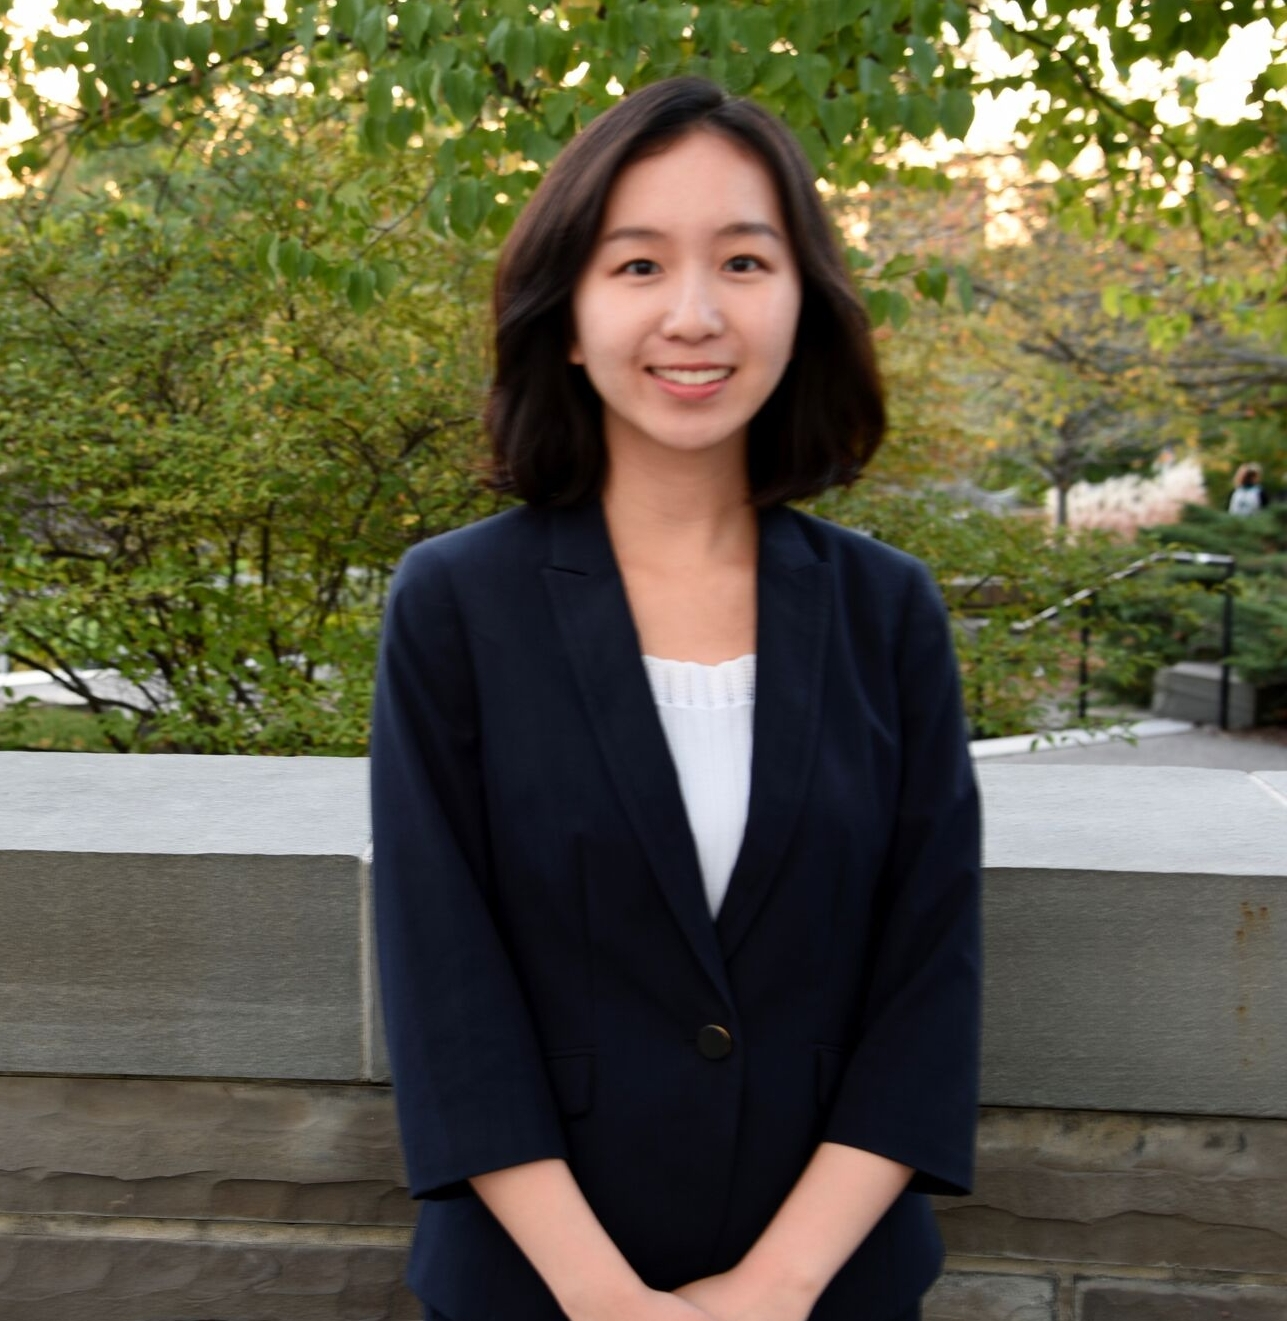 Hayan Lee '20 - I am a junior majoring in economics with a minor in business and international relations. I joined CBR because I wanted to gain further insight on the business aspect of a publication organization and interview interesting alumni and student entrepreneurs.